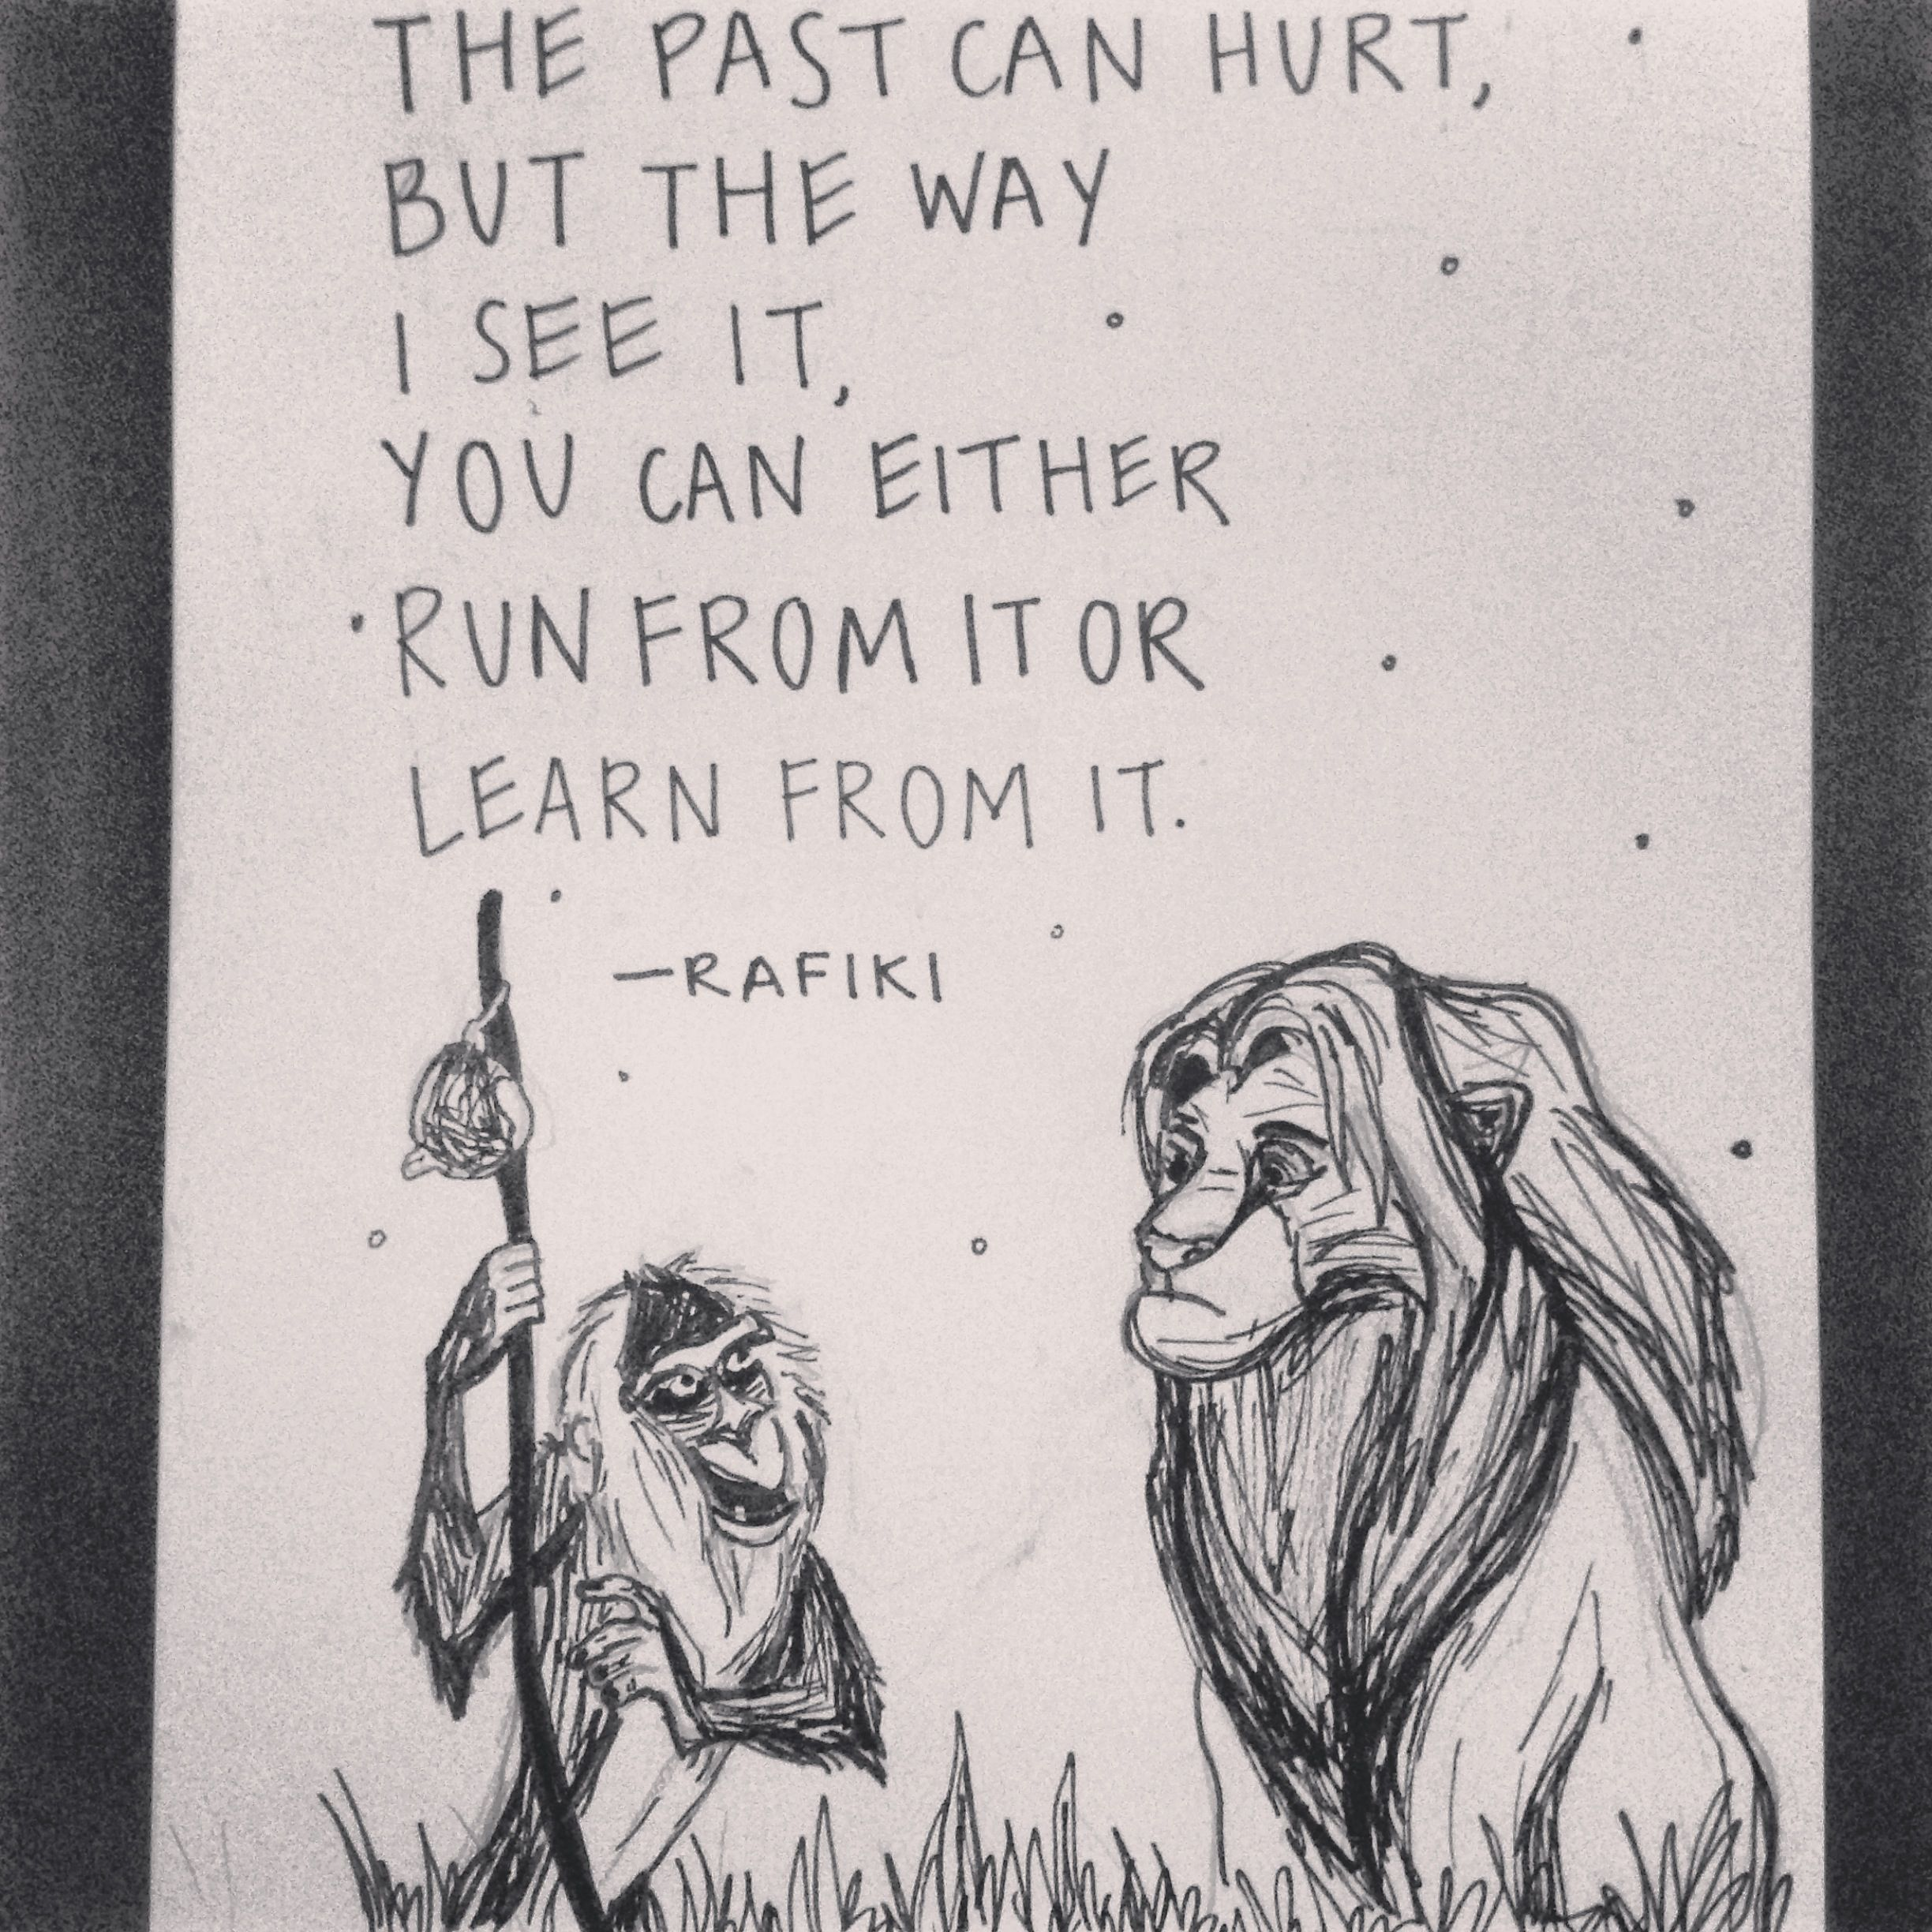 """The past can hurt, but the way I see it, you can either run from it or learn from it"" Lion King quote"